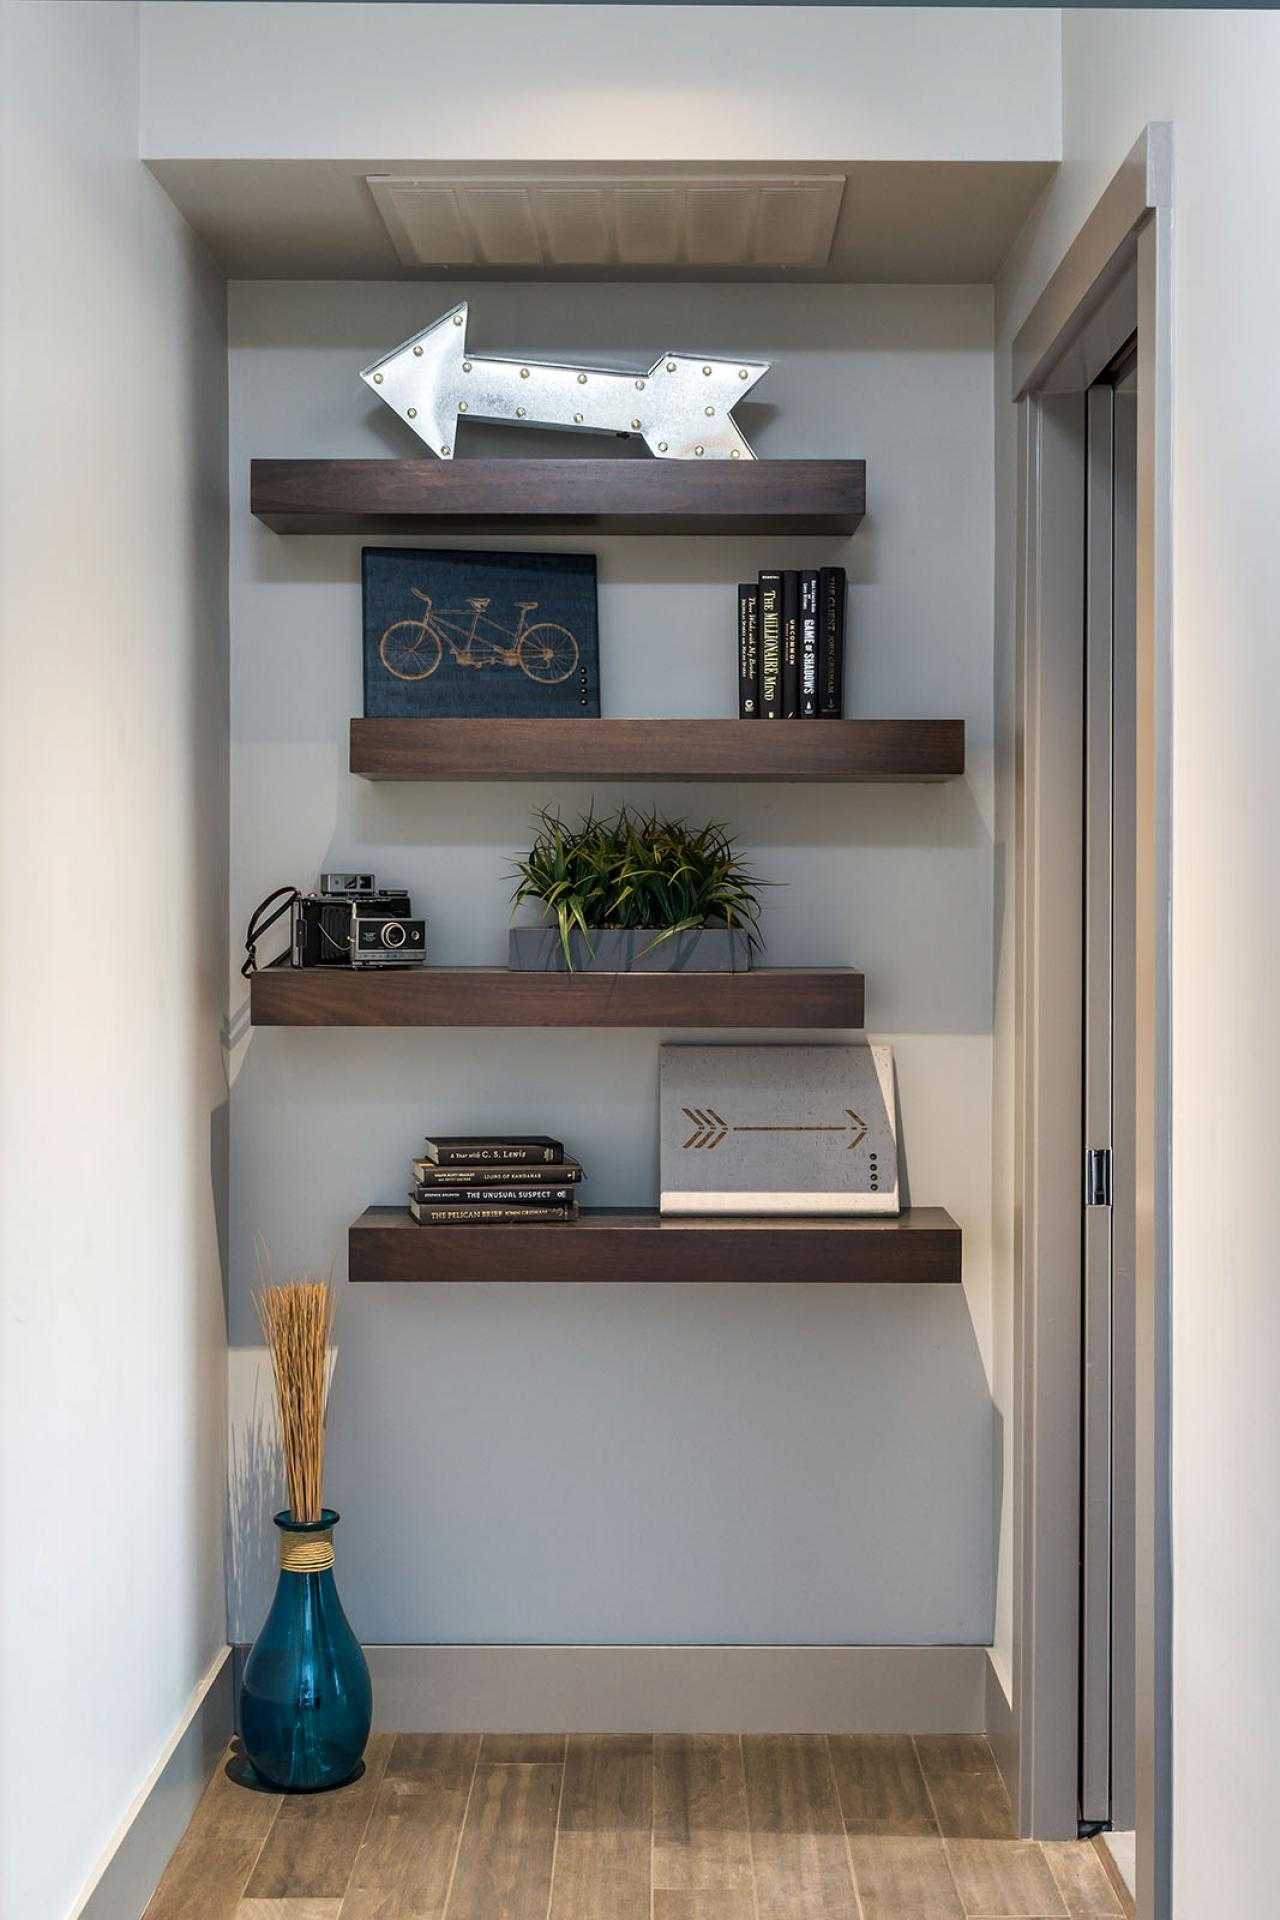 incredible floating shelves for bedroom trends and bathroom bunnings ikea diy ways decorate with kitchen wall rack hooks single sink vanity closet clothes storage inch shelf